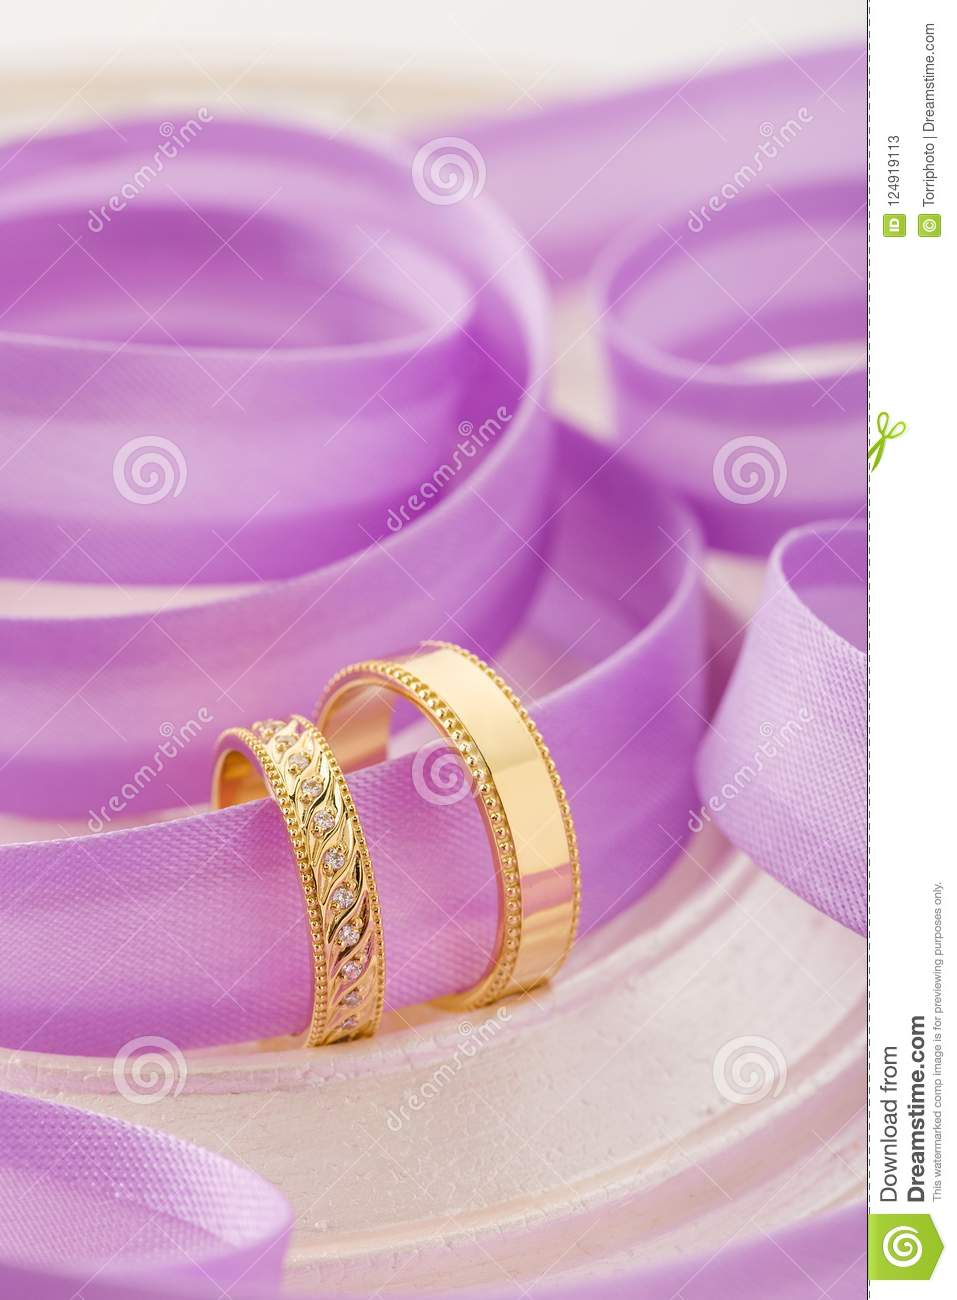 Two Gold Wedding Rings On Purple Ribbon Background Stock Image ...